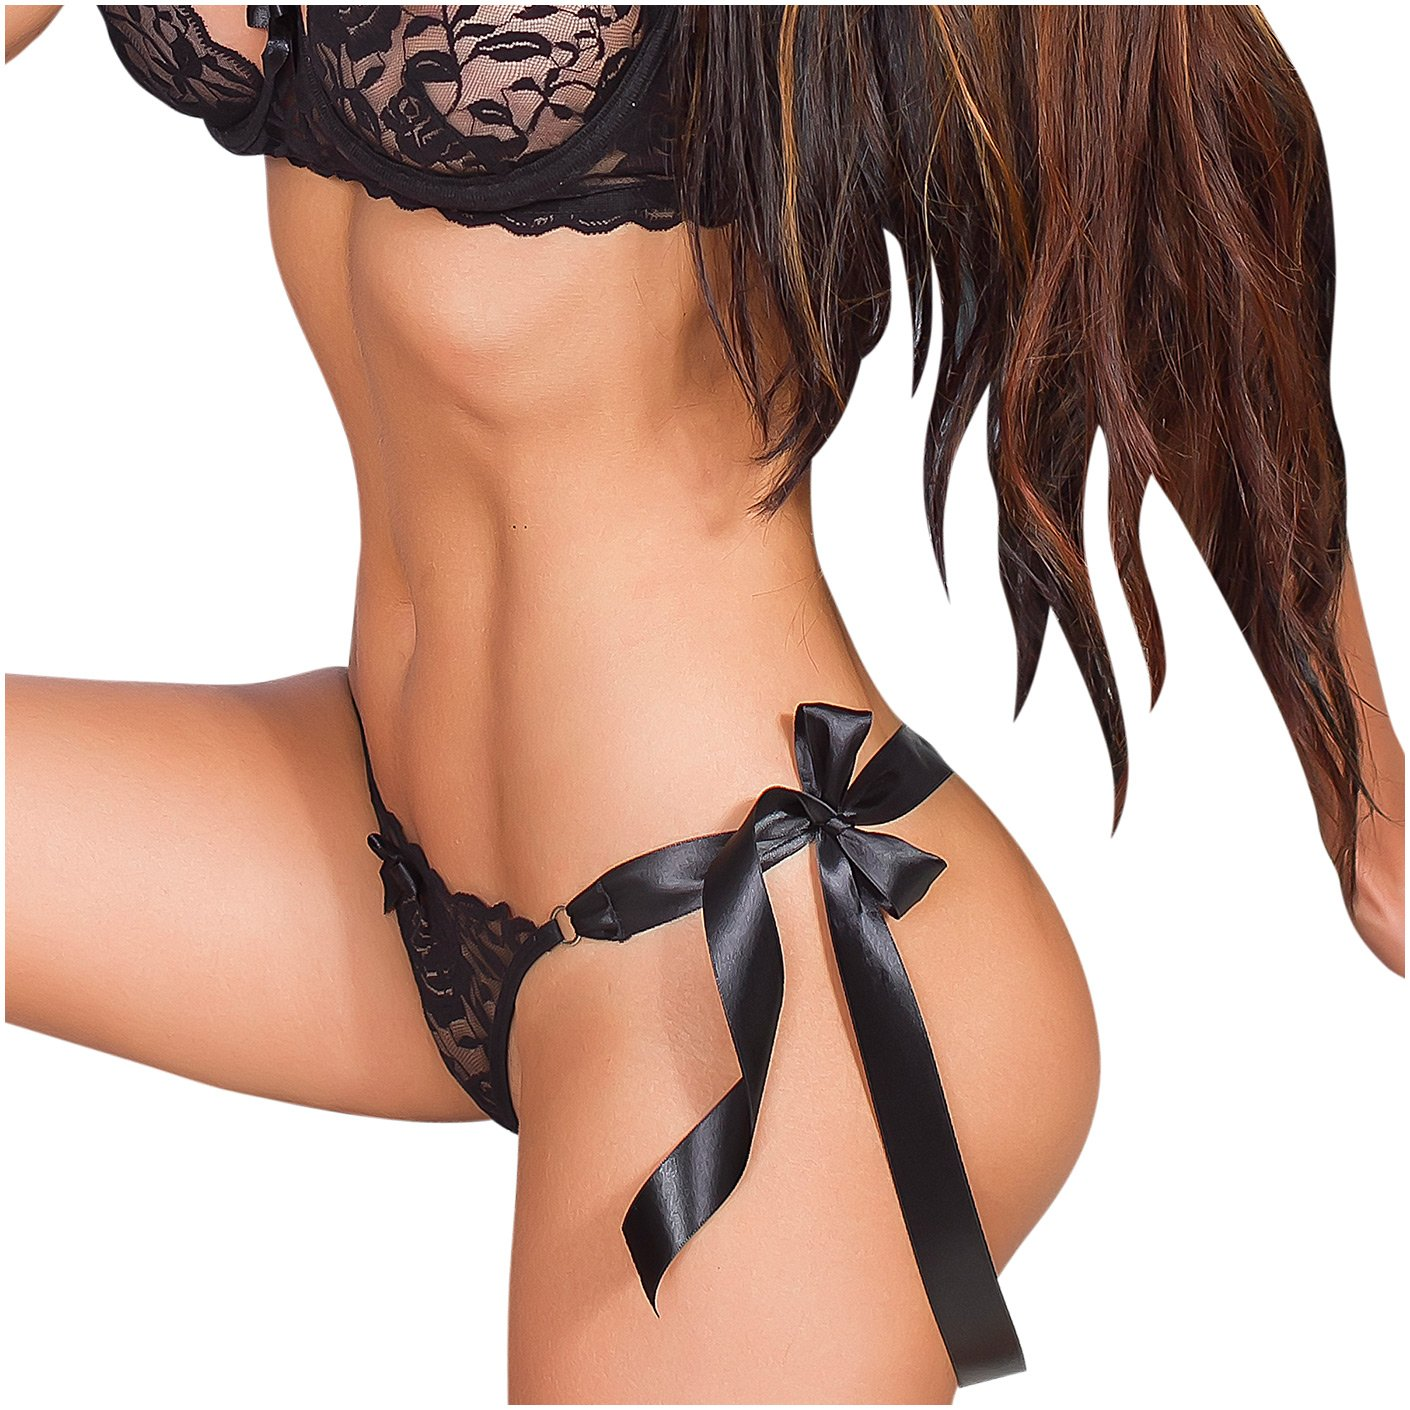 Amawi 1036 Sexy Lace Thong Panties For Women Underwear Lenceria Erotica Para Mujer Ropa Interior Femenina Sensual Colombiana de Encaje Black/Negro at Amazon ...